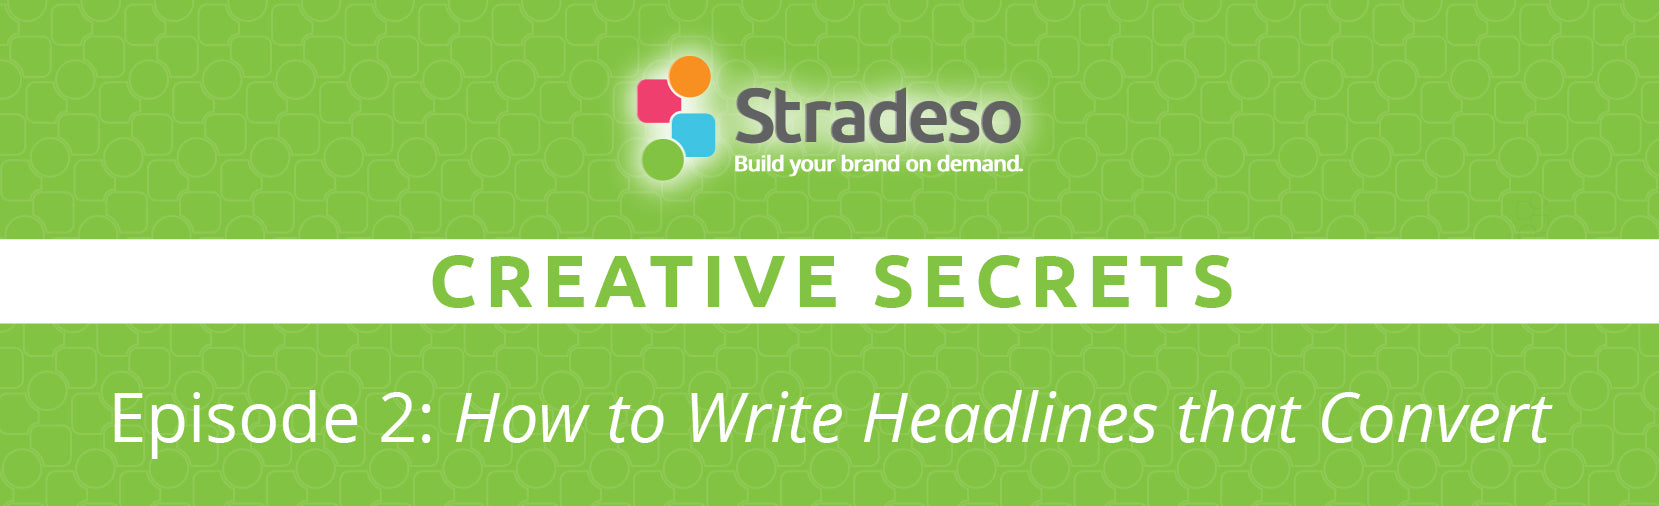 Episode 2: How to Write Headlines that Convert